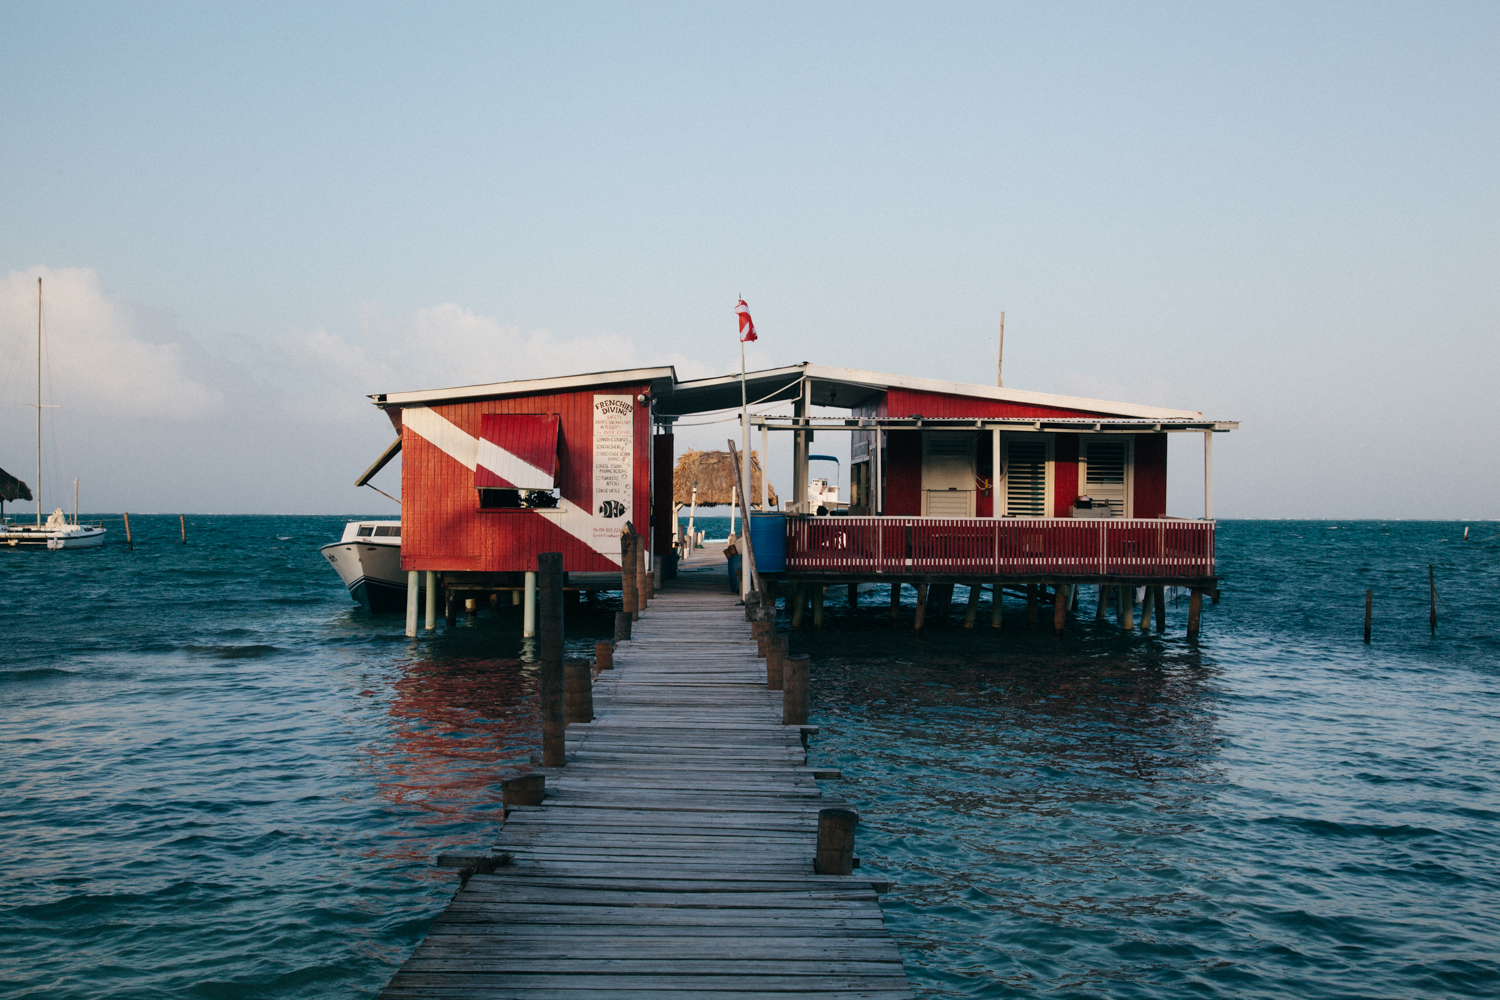 Frenchie's Dive Shop - One of the oldest and offering the most competitive prices on Caye Caulker